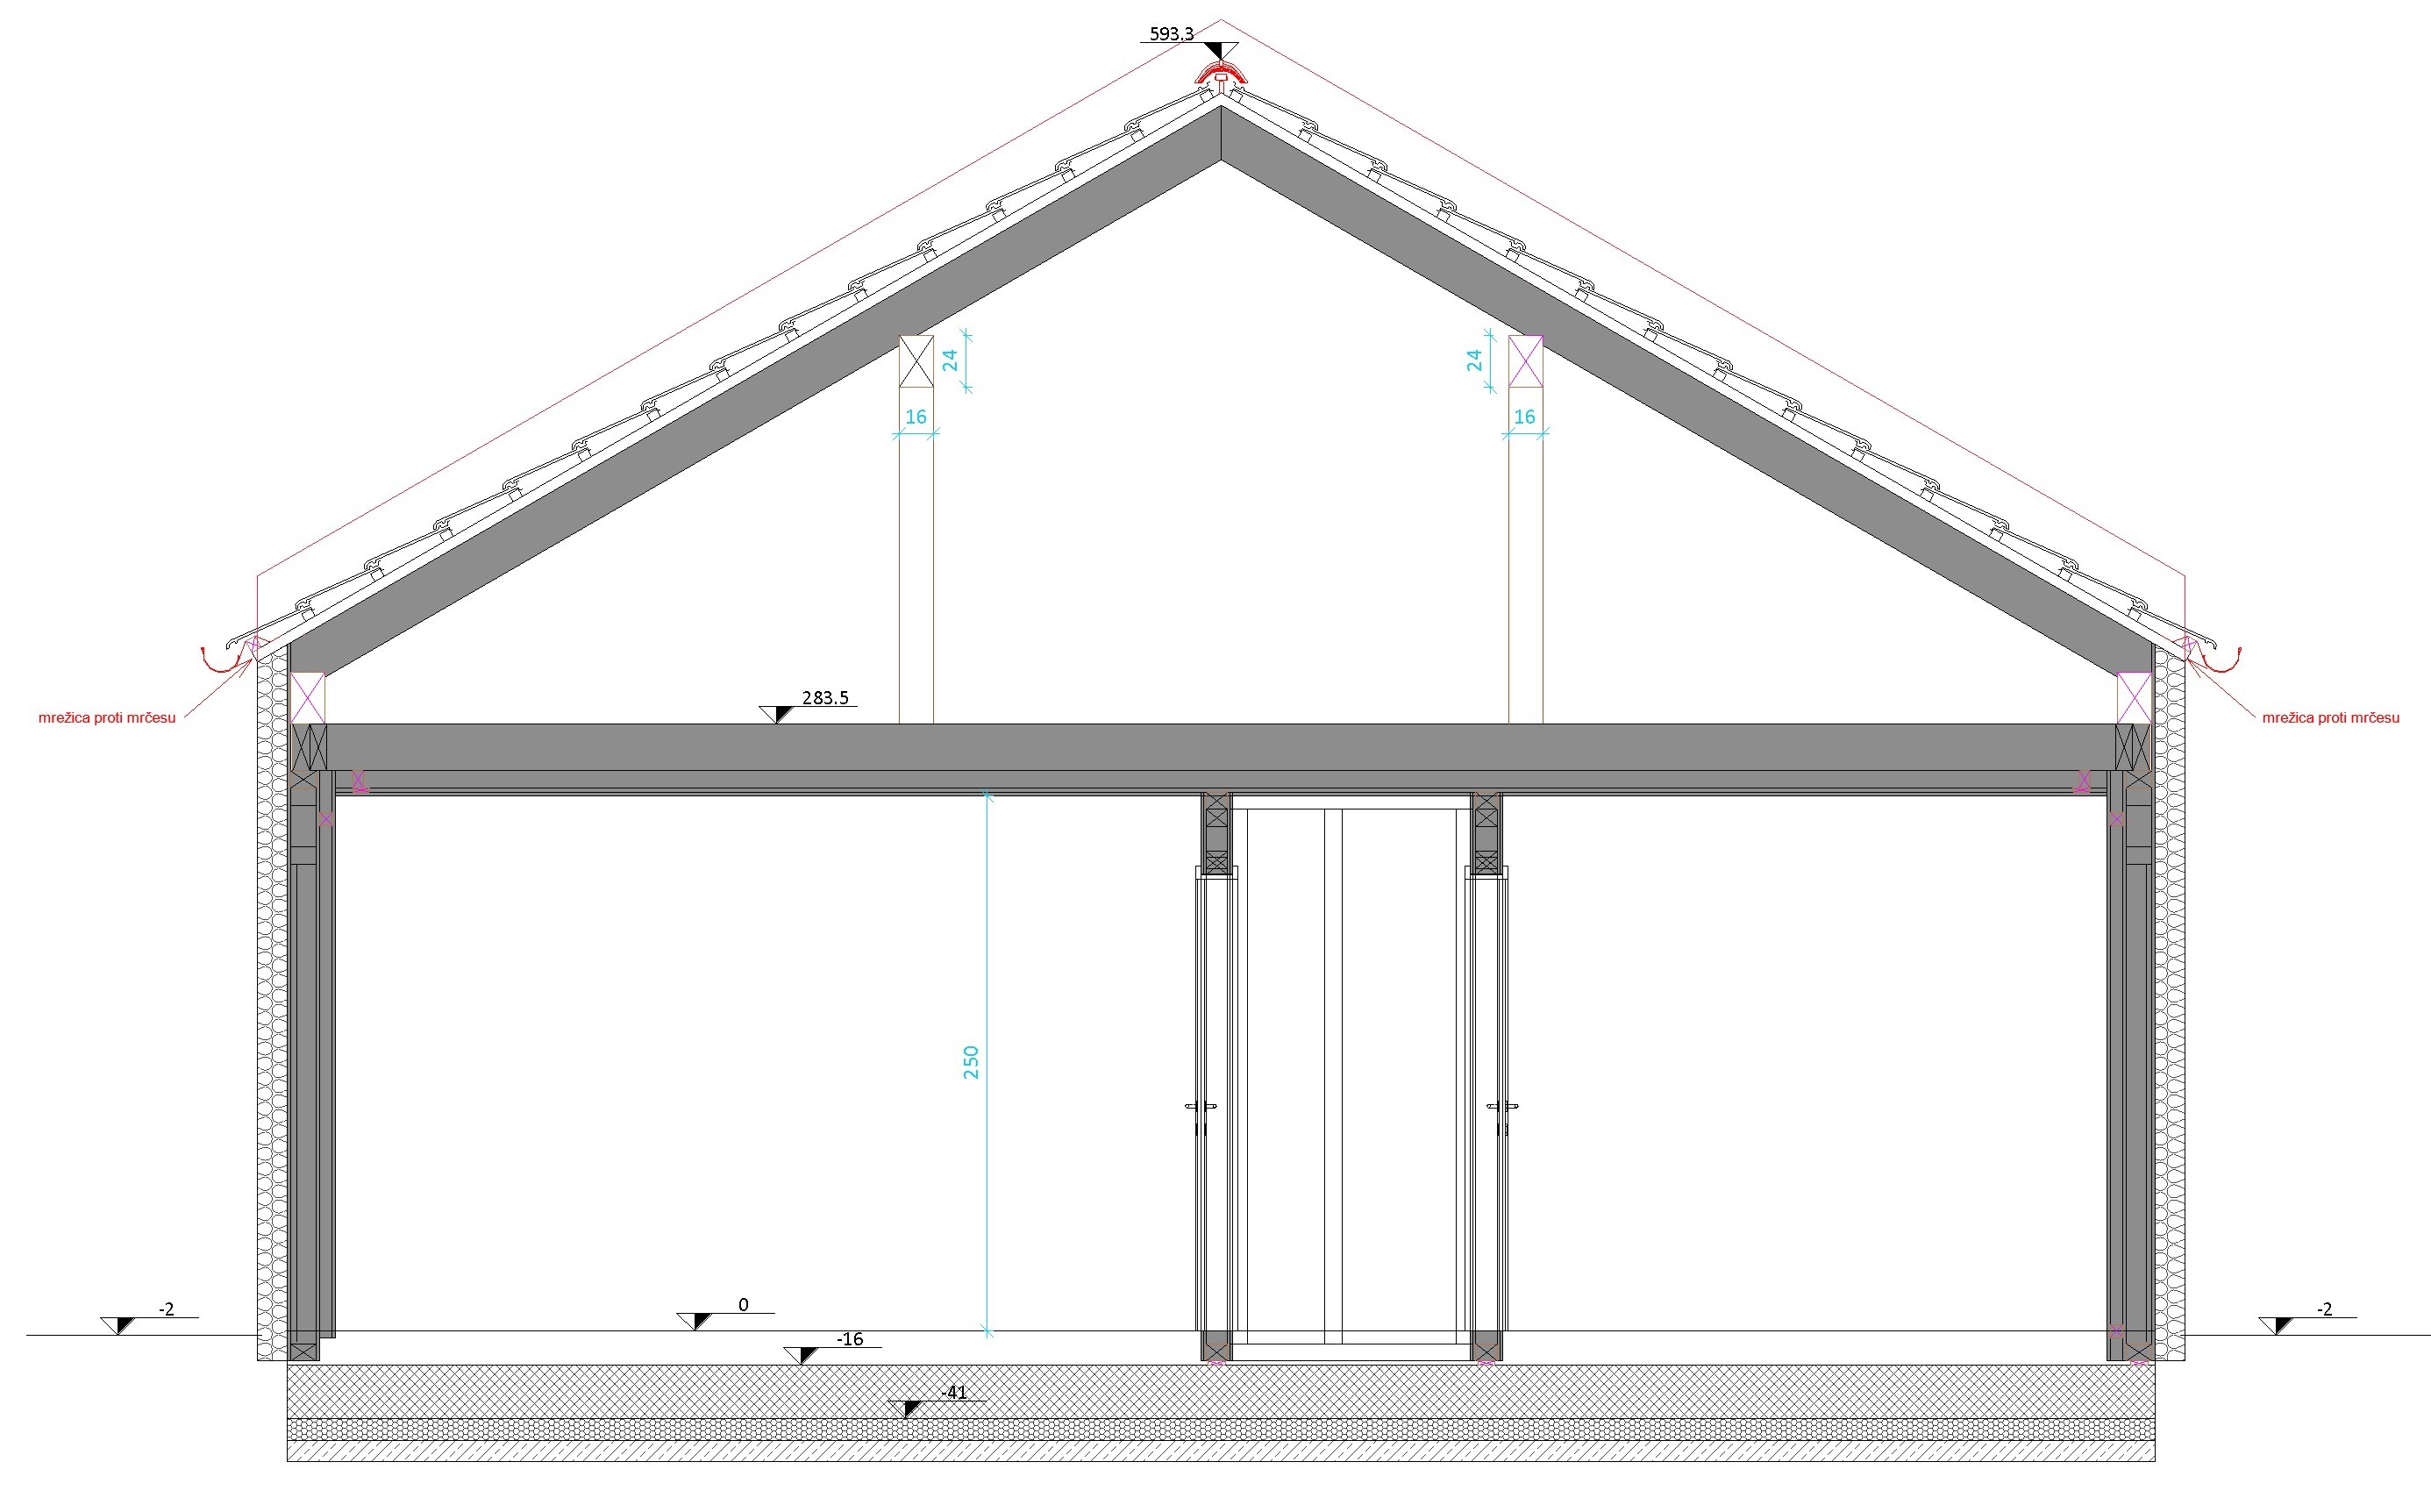 section of prefabricated timber house modeled in Autodesk Revit by Rihter using AGACAD Wood Framing BIM design software